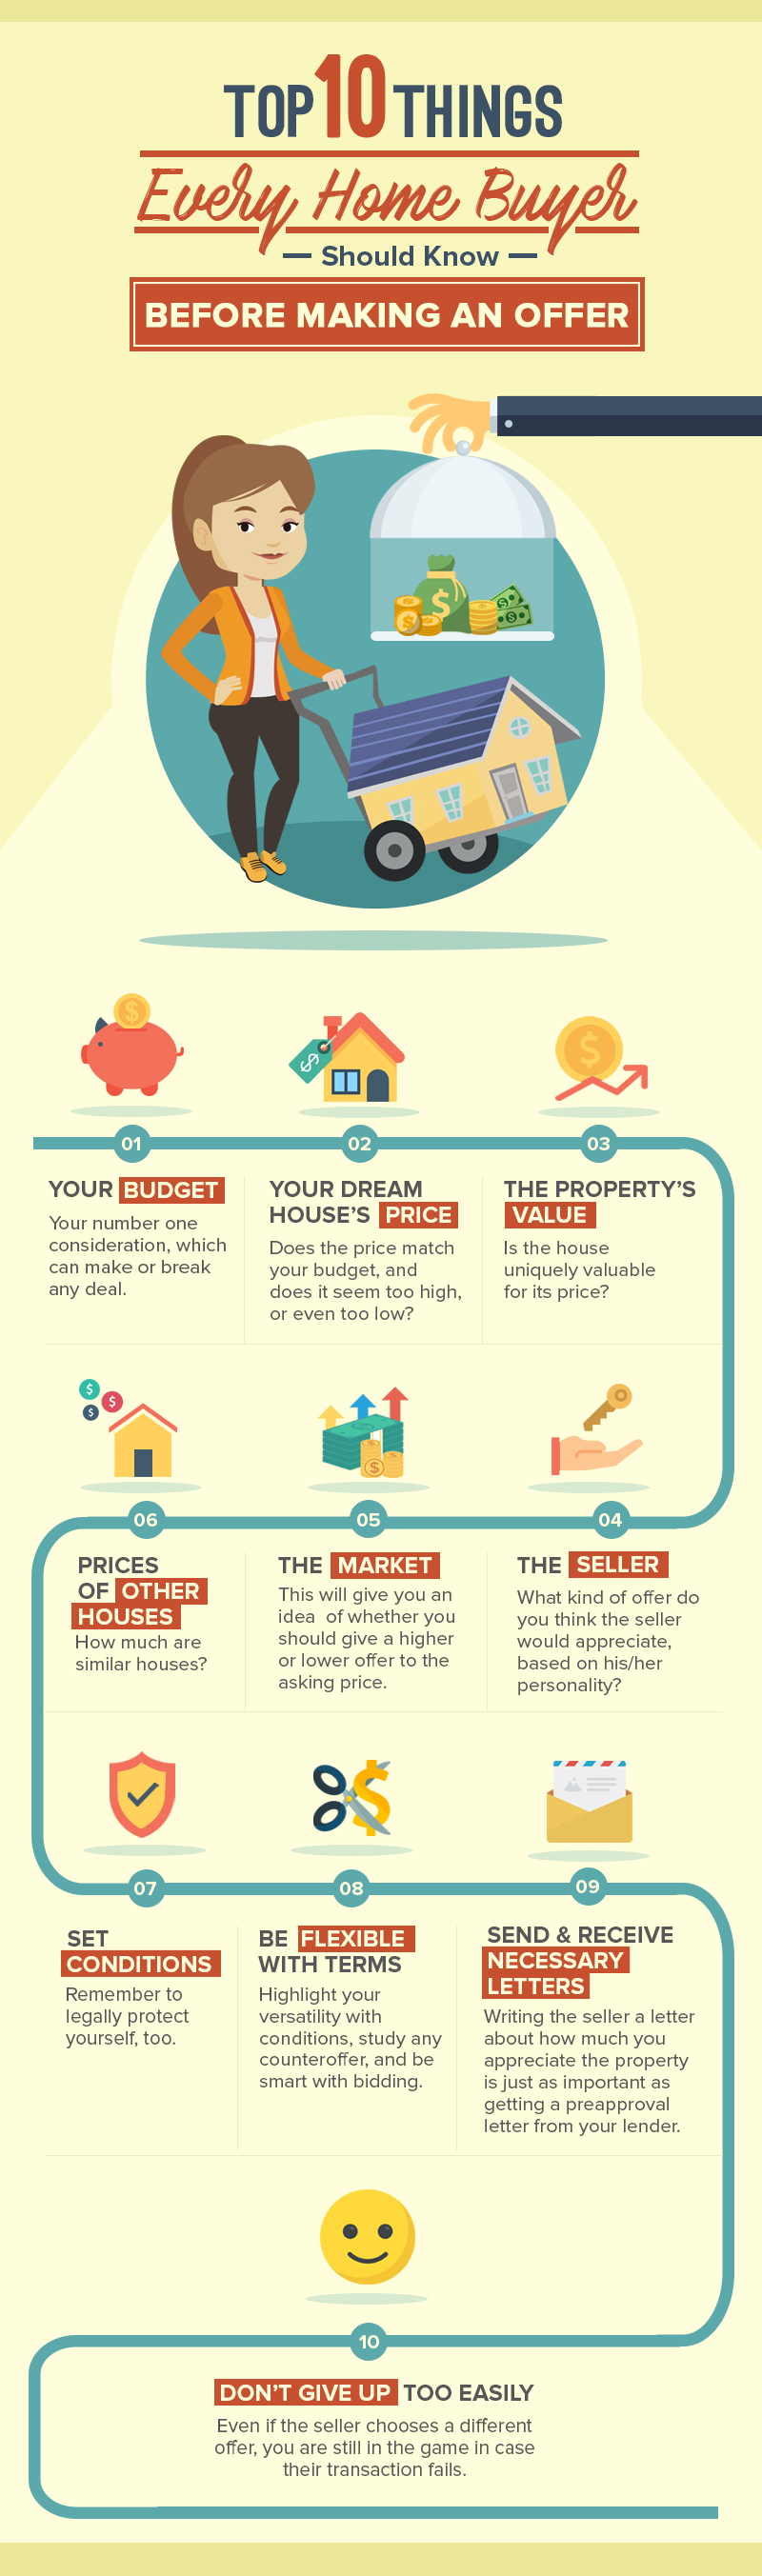 Top 10 Things Every Home Buyer Should Know Before Making An Offer